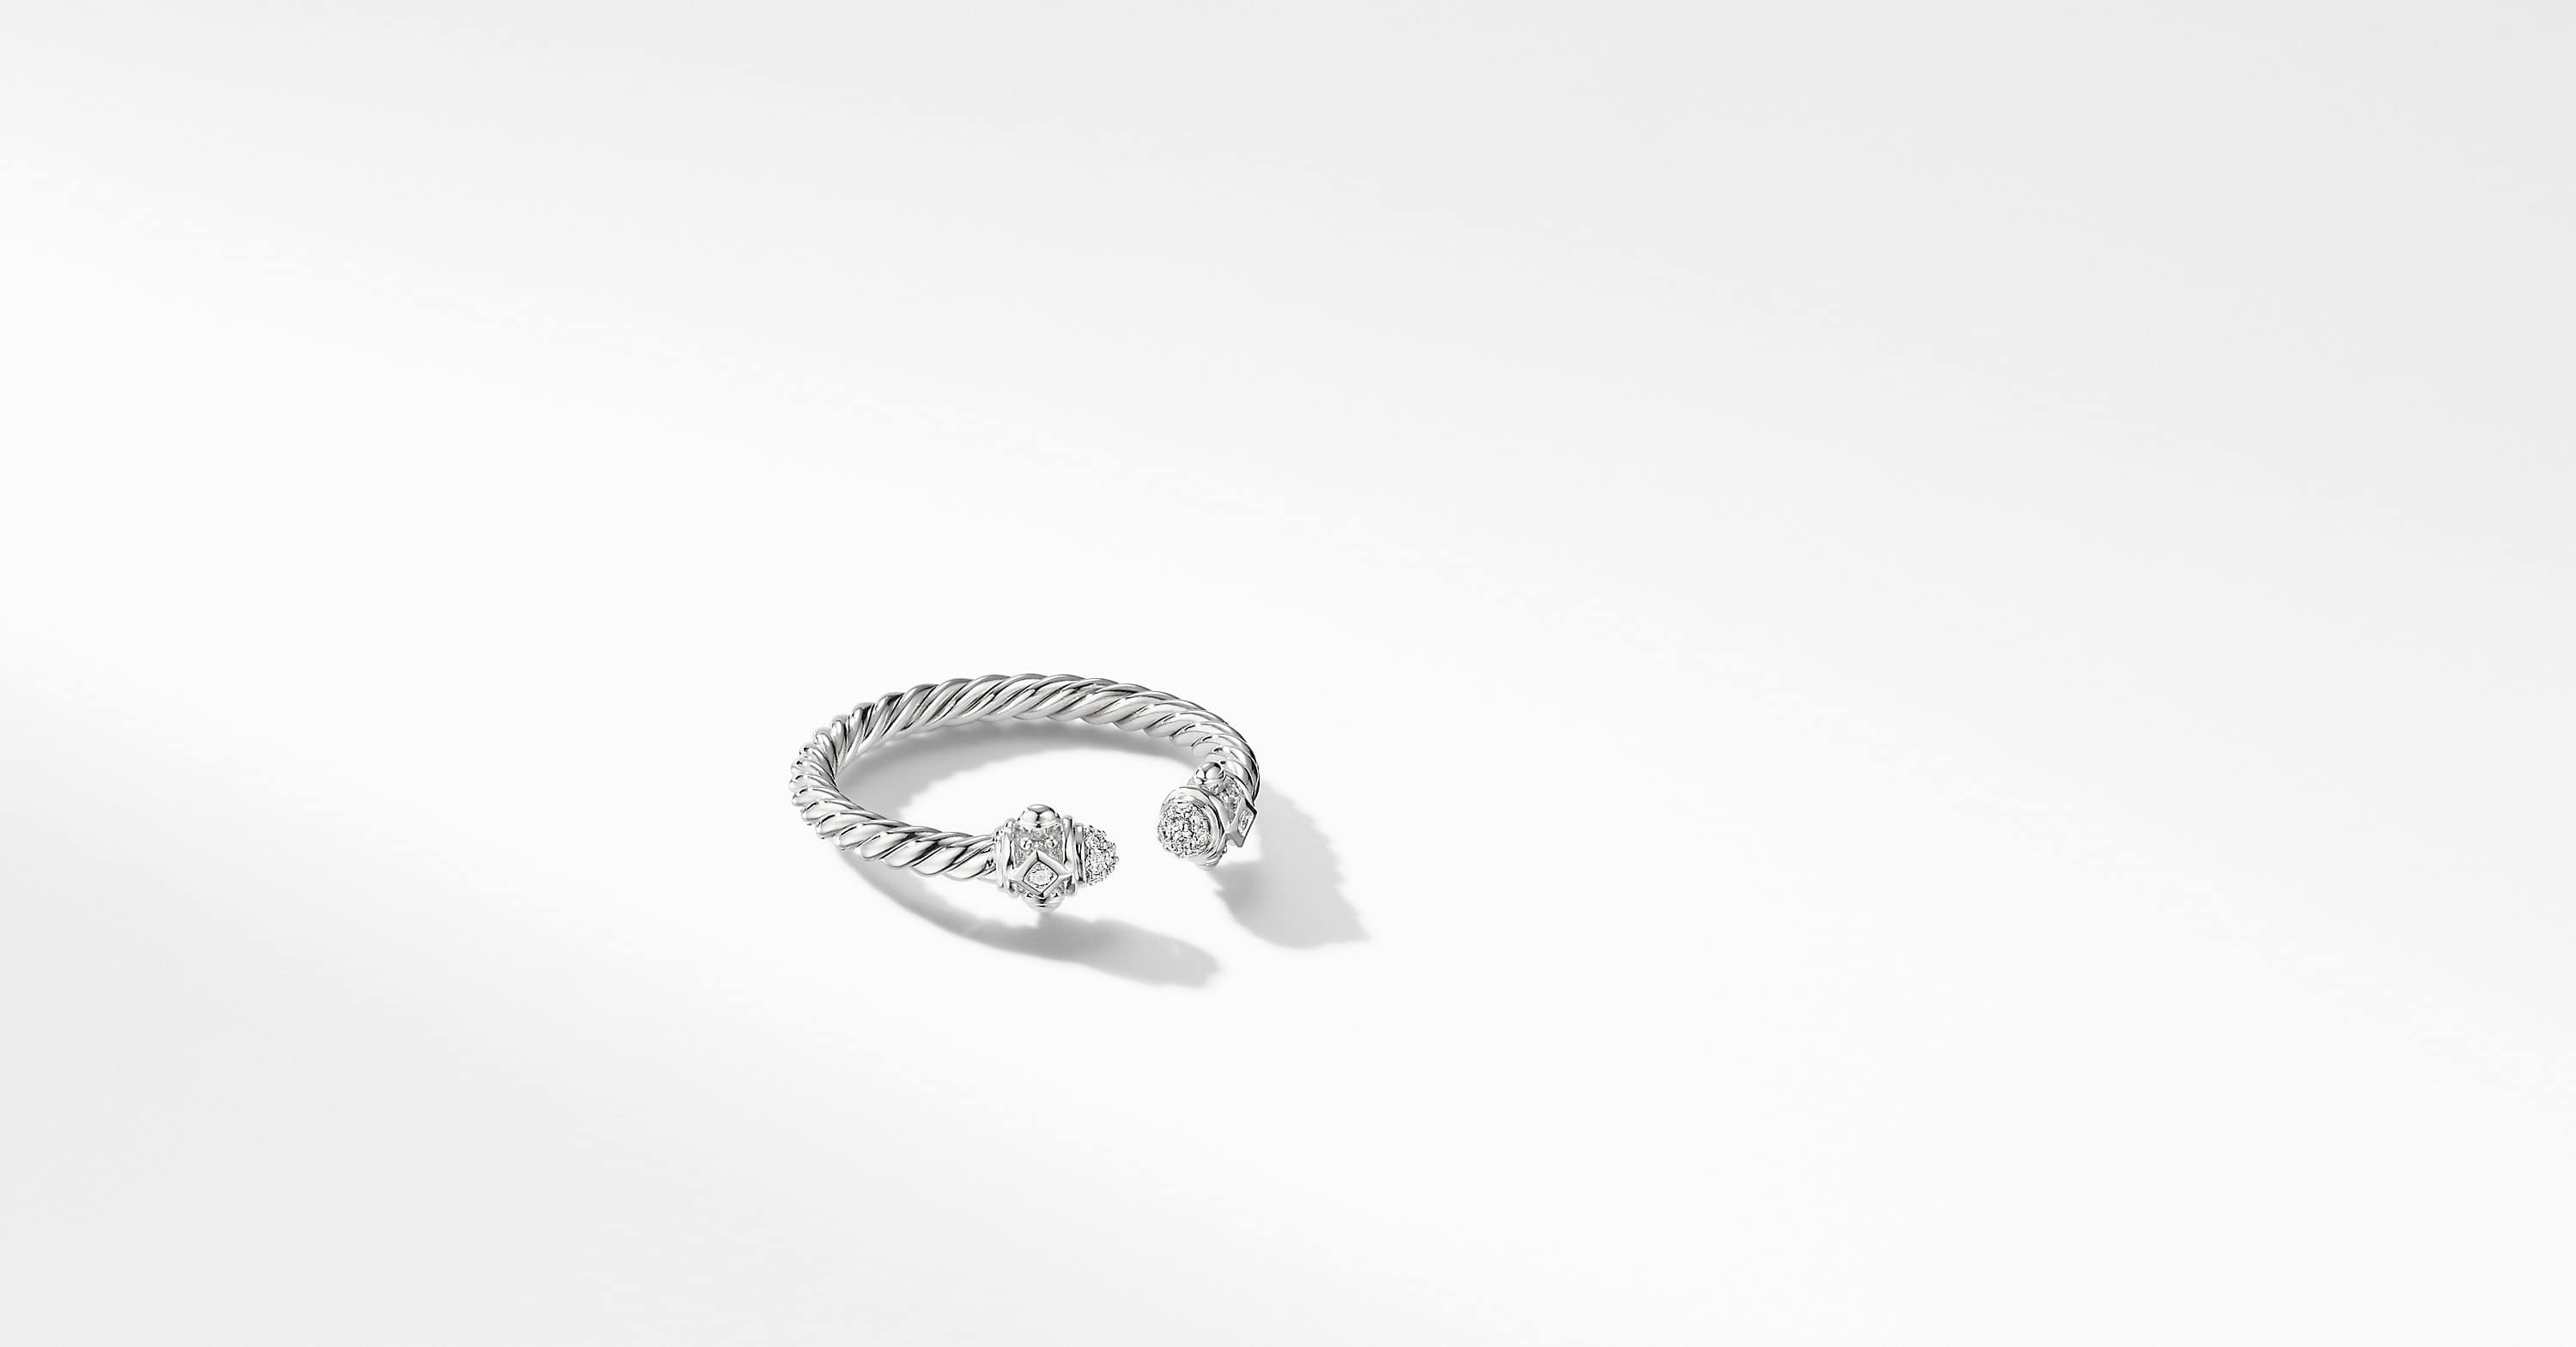 Renaissance Ring in 18K White Gold with Diamonds